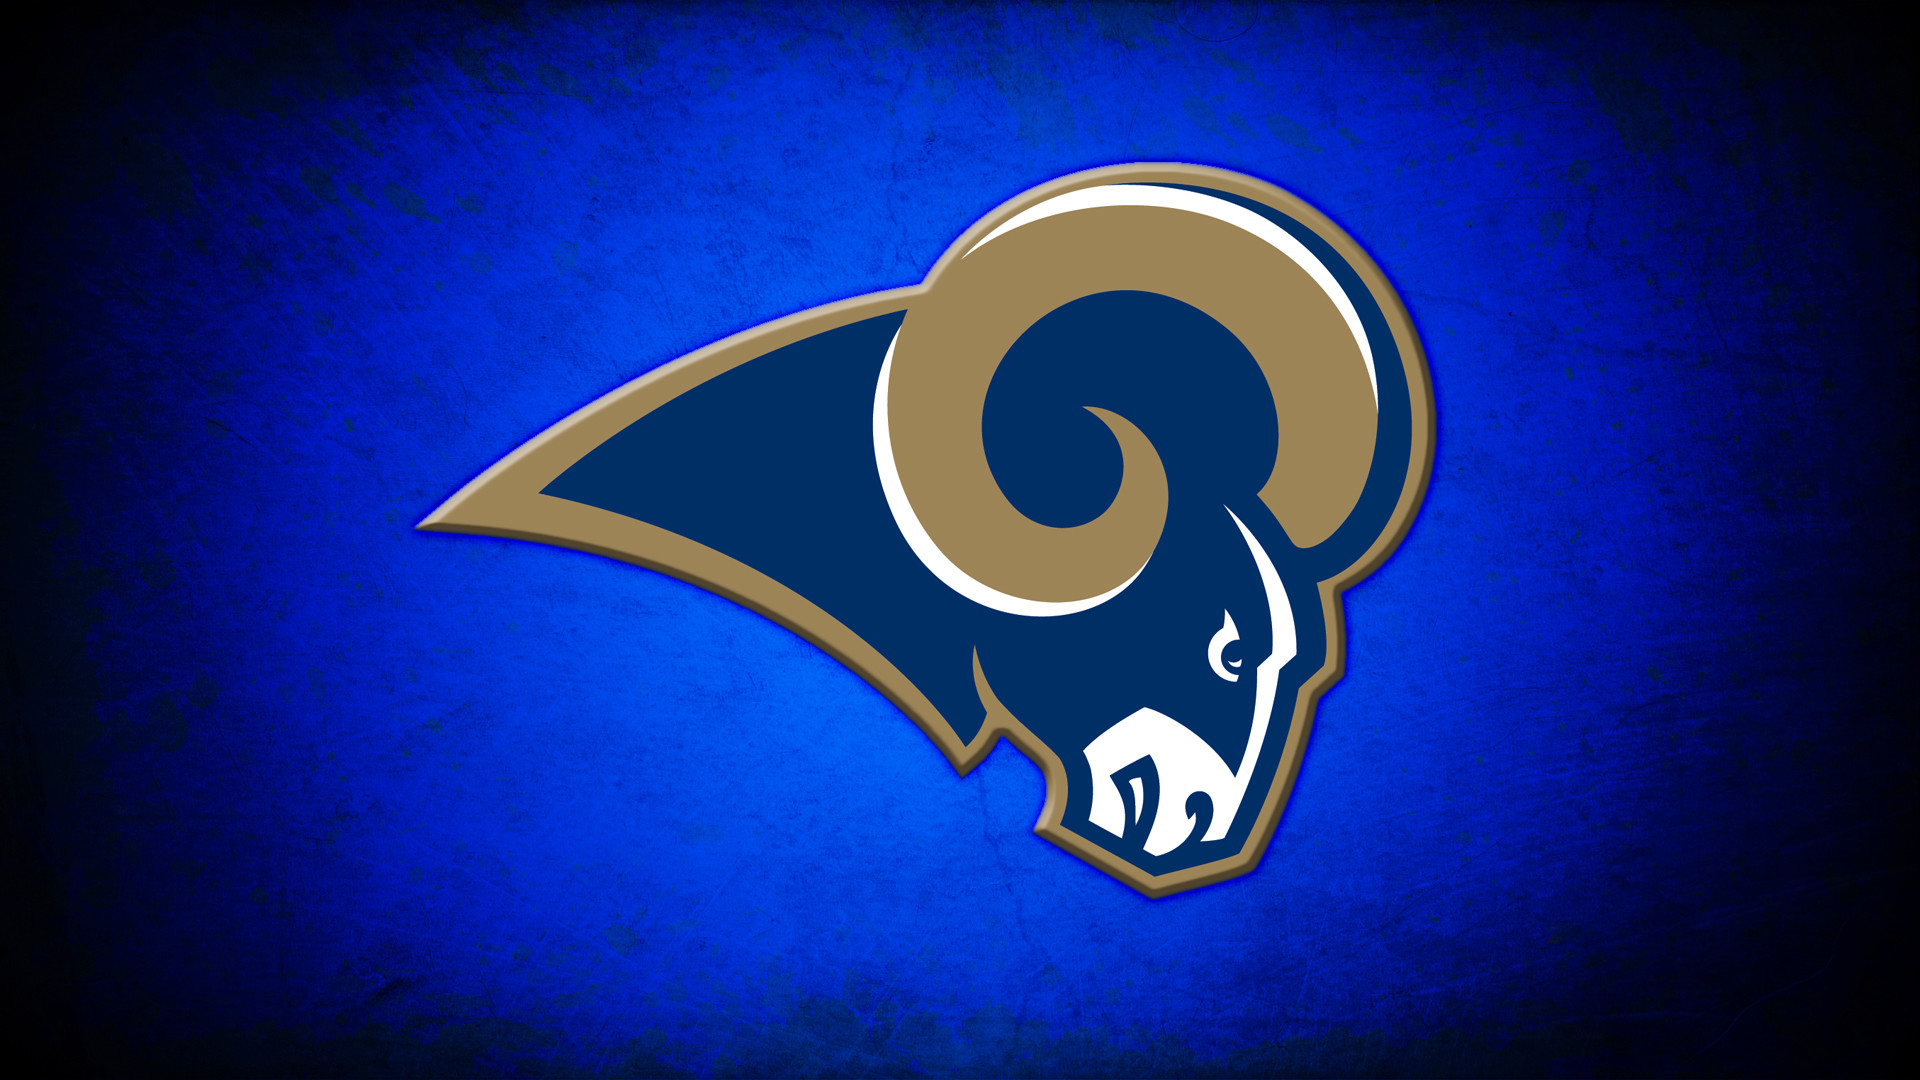 St. Louis Rams wallpapers background..what more could you ask .